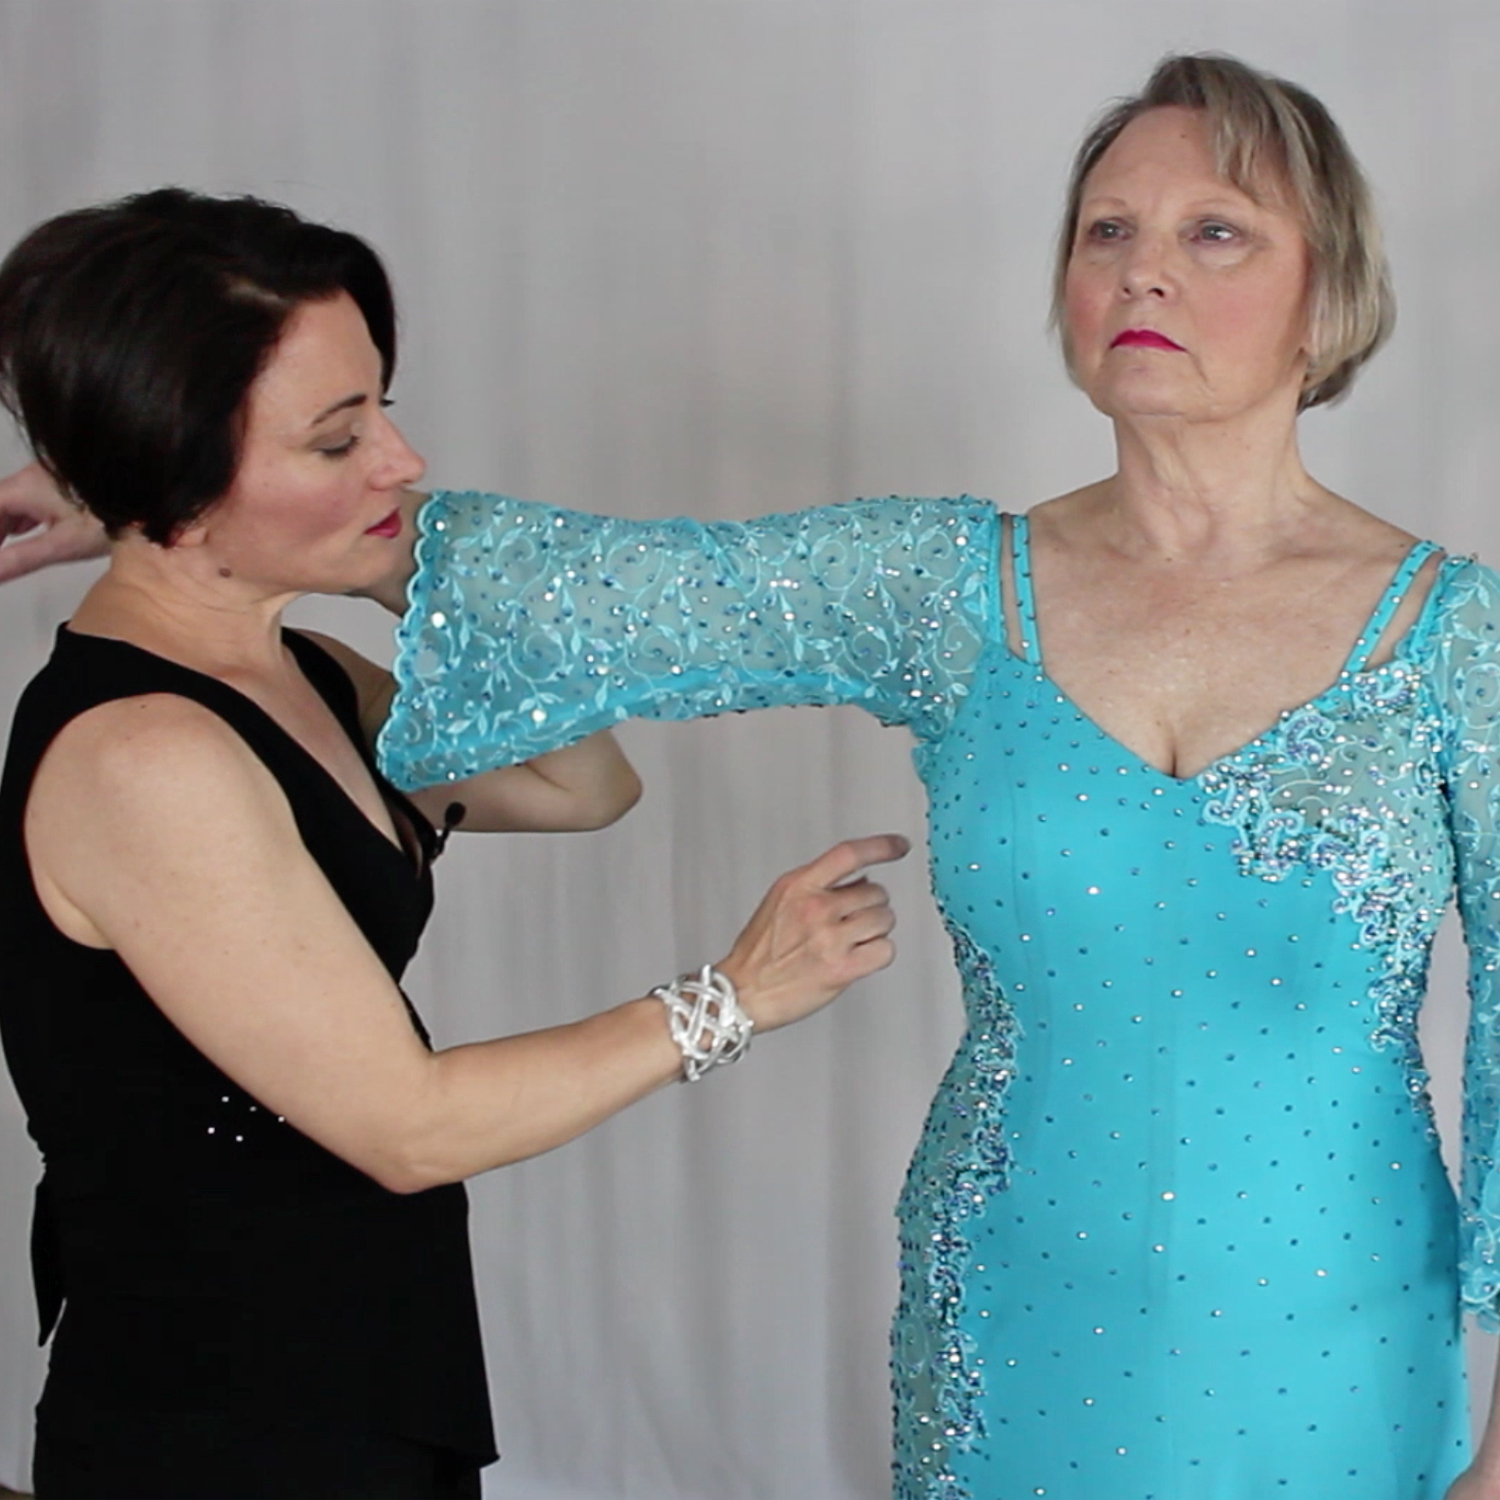 How to do a leotard fitting or dress fitting on competition Dancesport, Ballroom, Latin, Country or skate dress